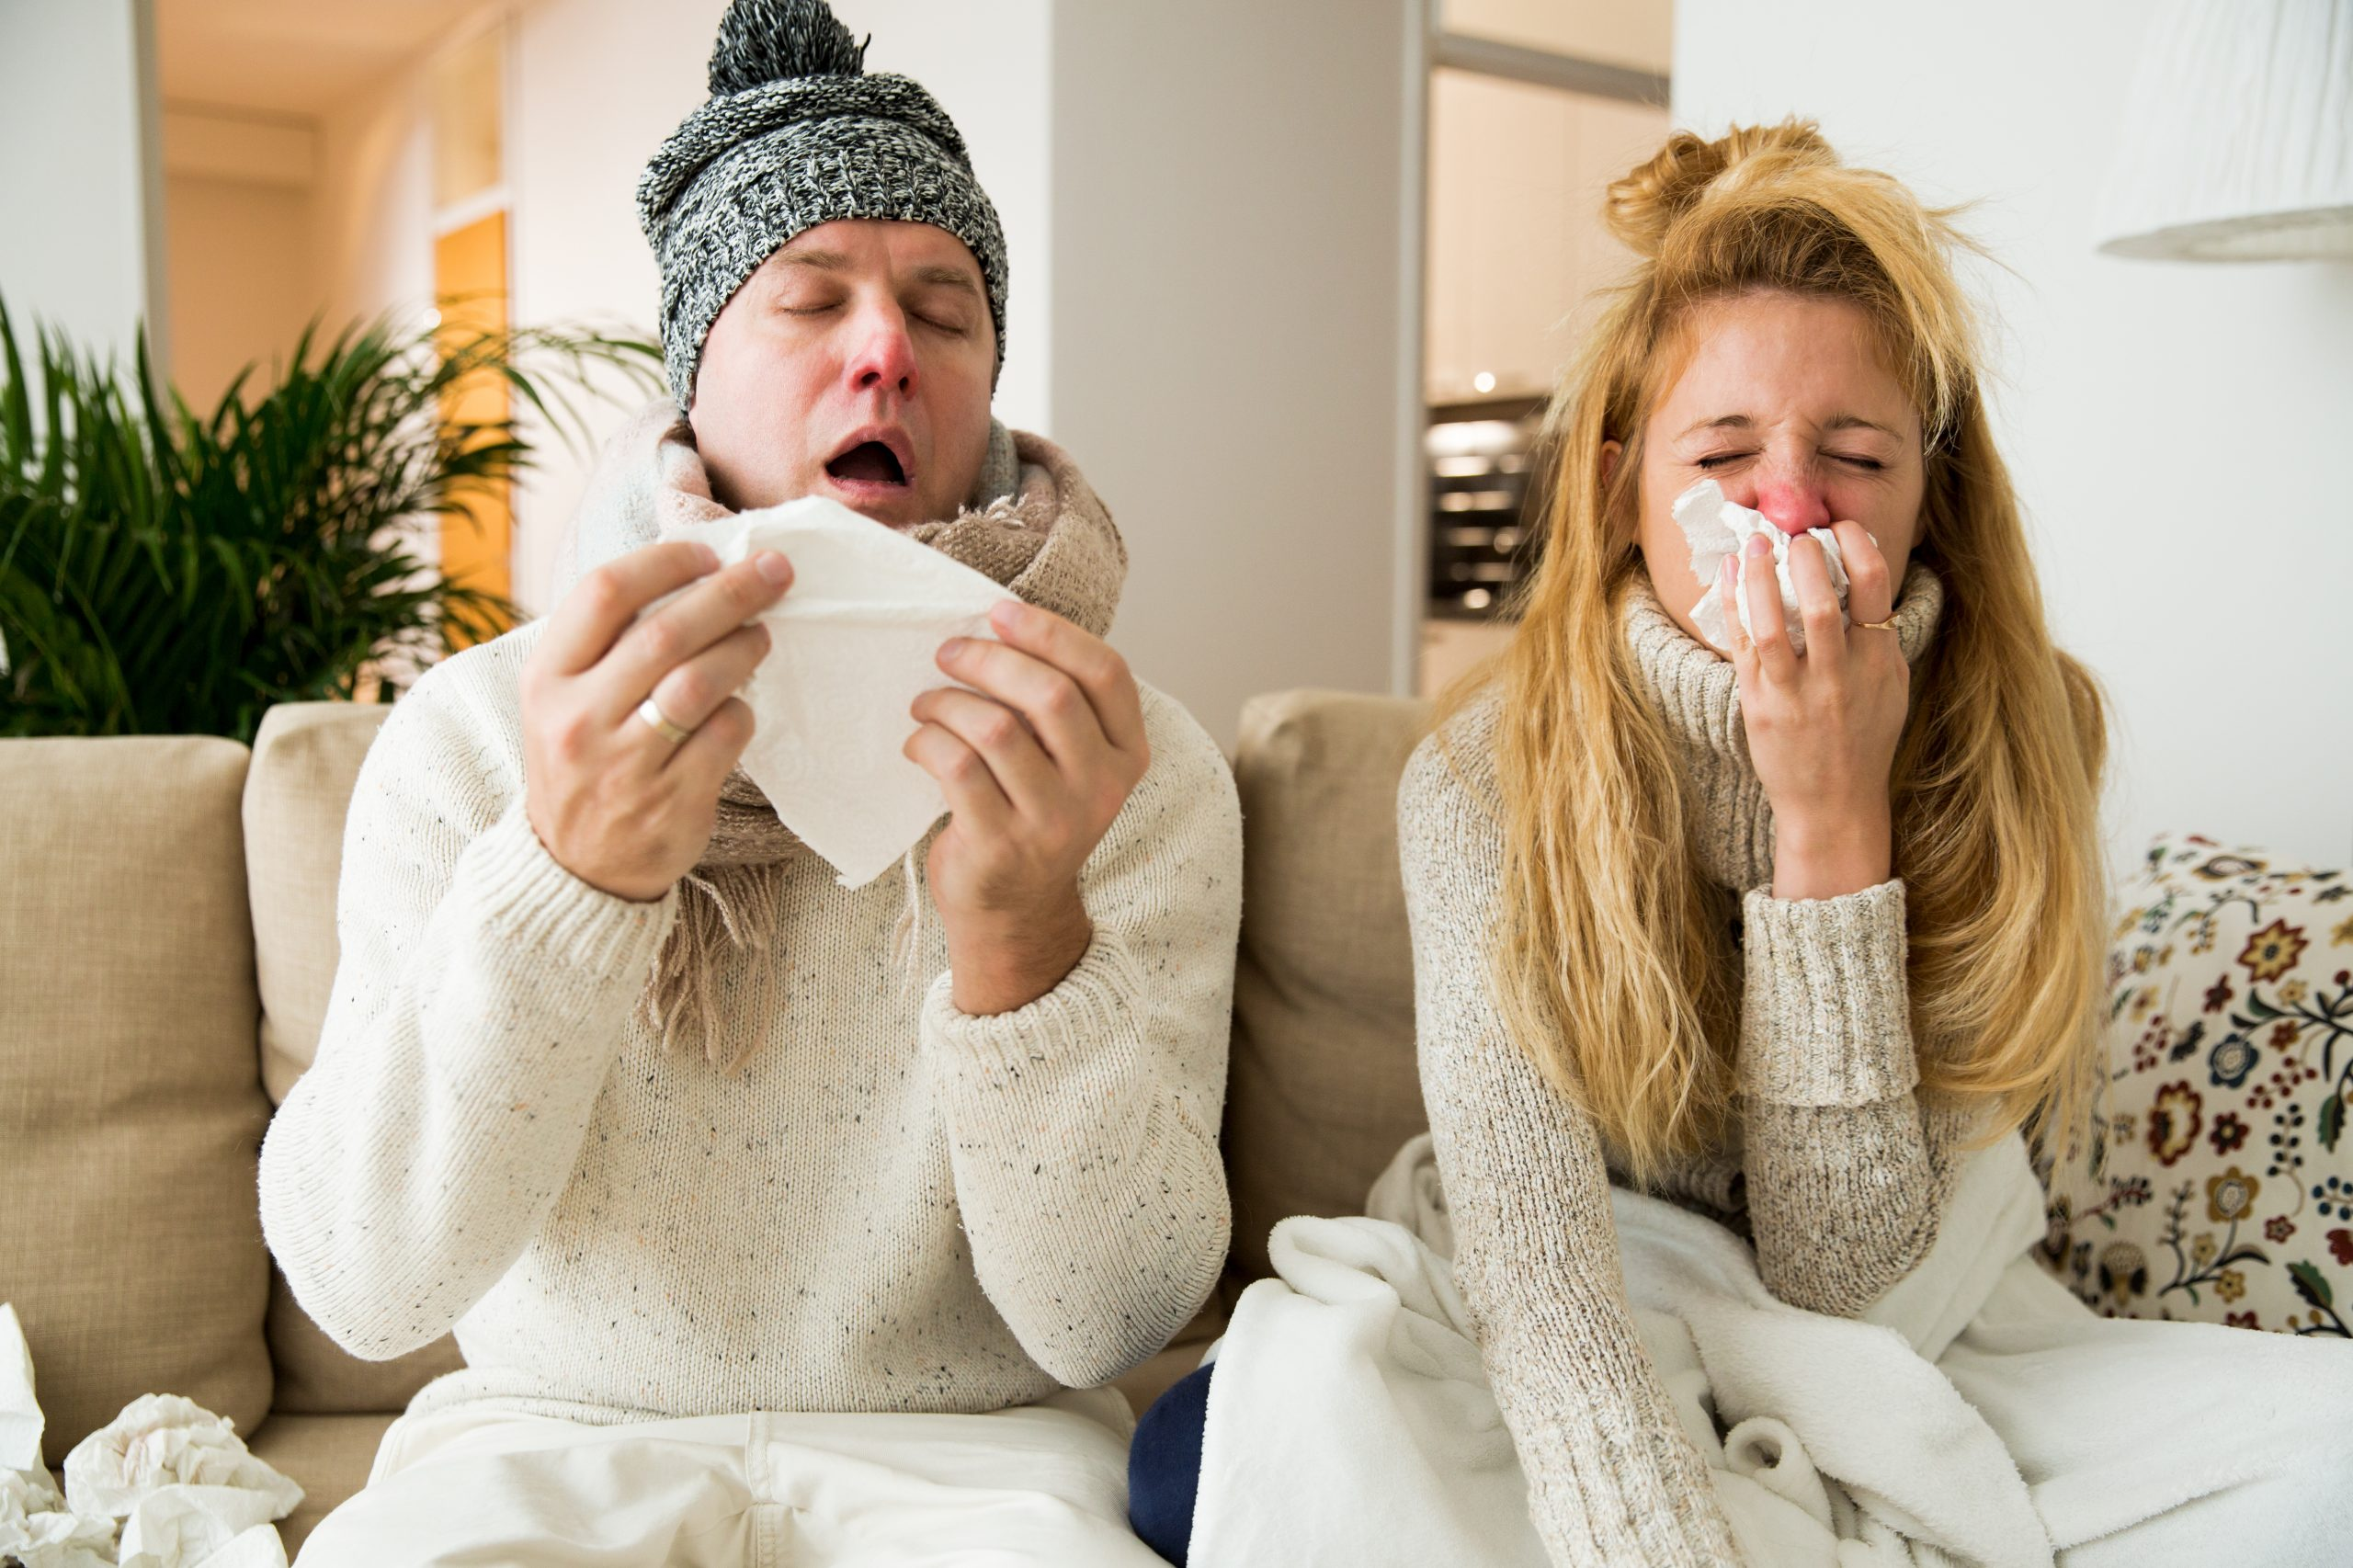 How Do I Know if I Have the Flu?